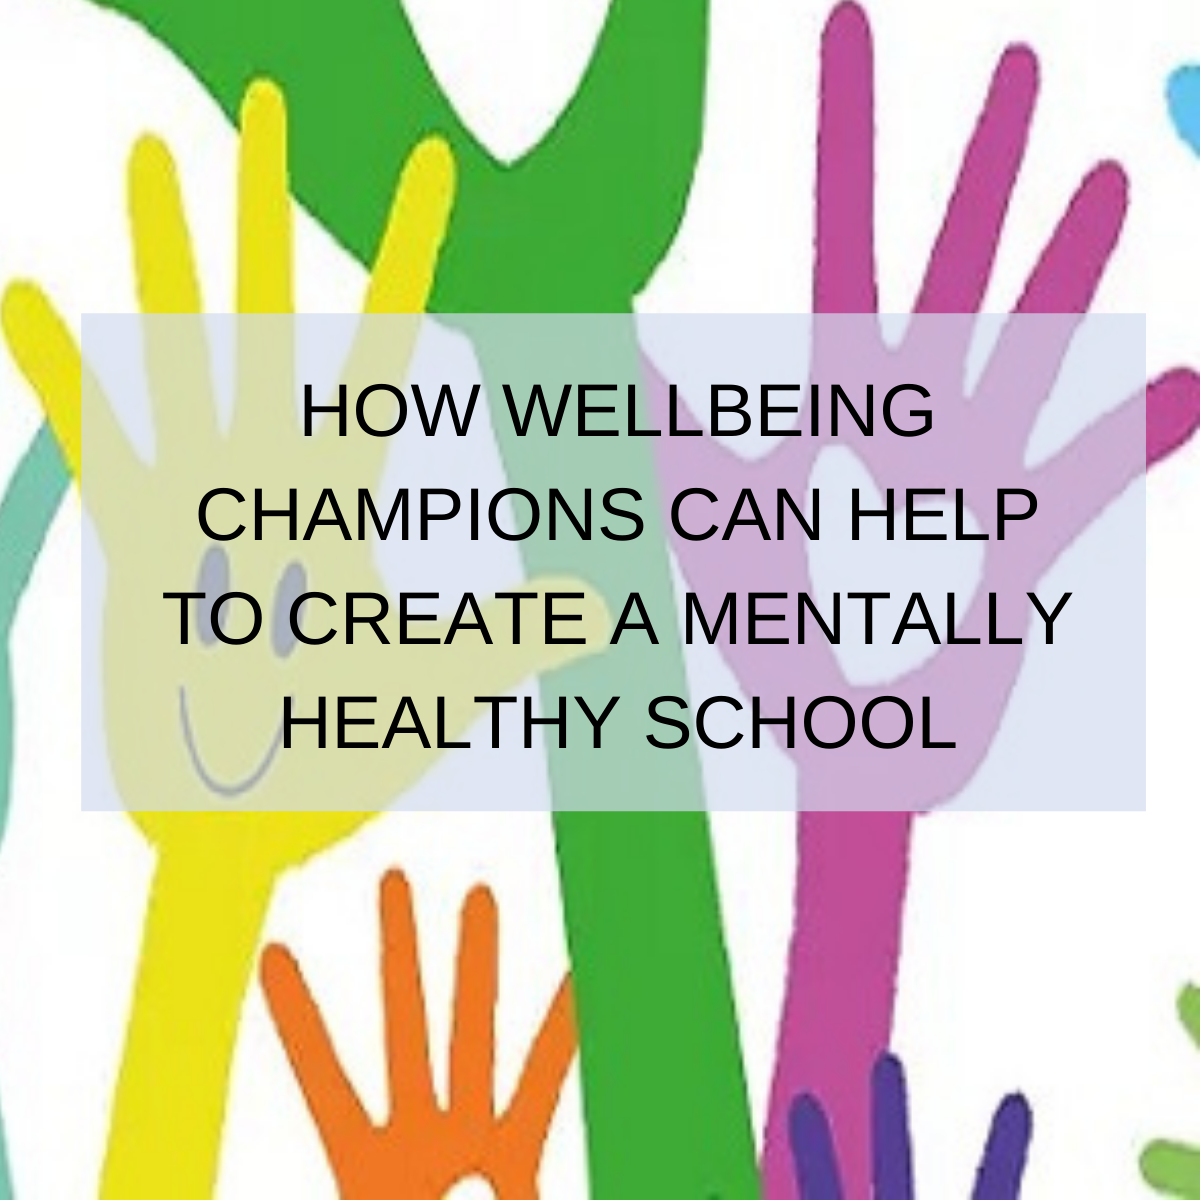 How Wellbeing Champions can help to create a mentally healthy school